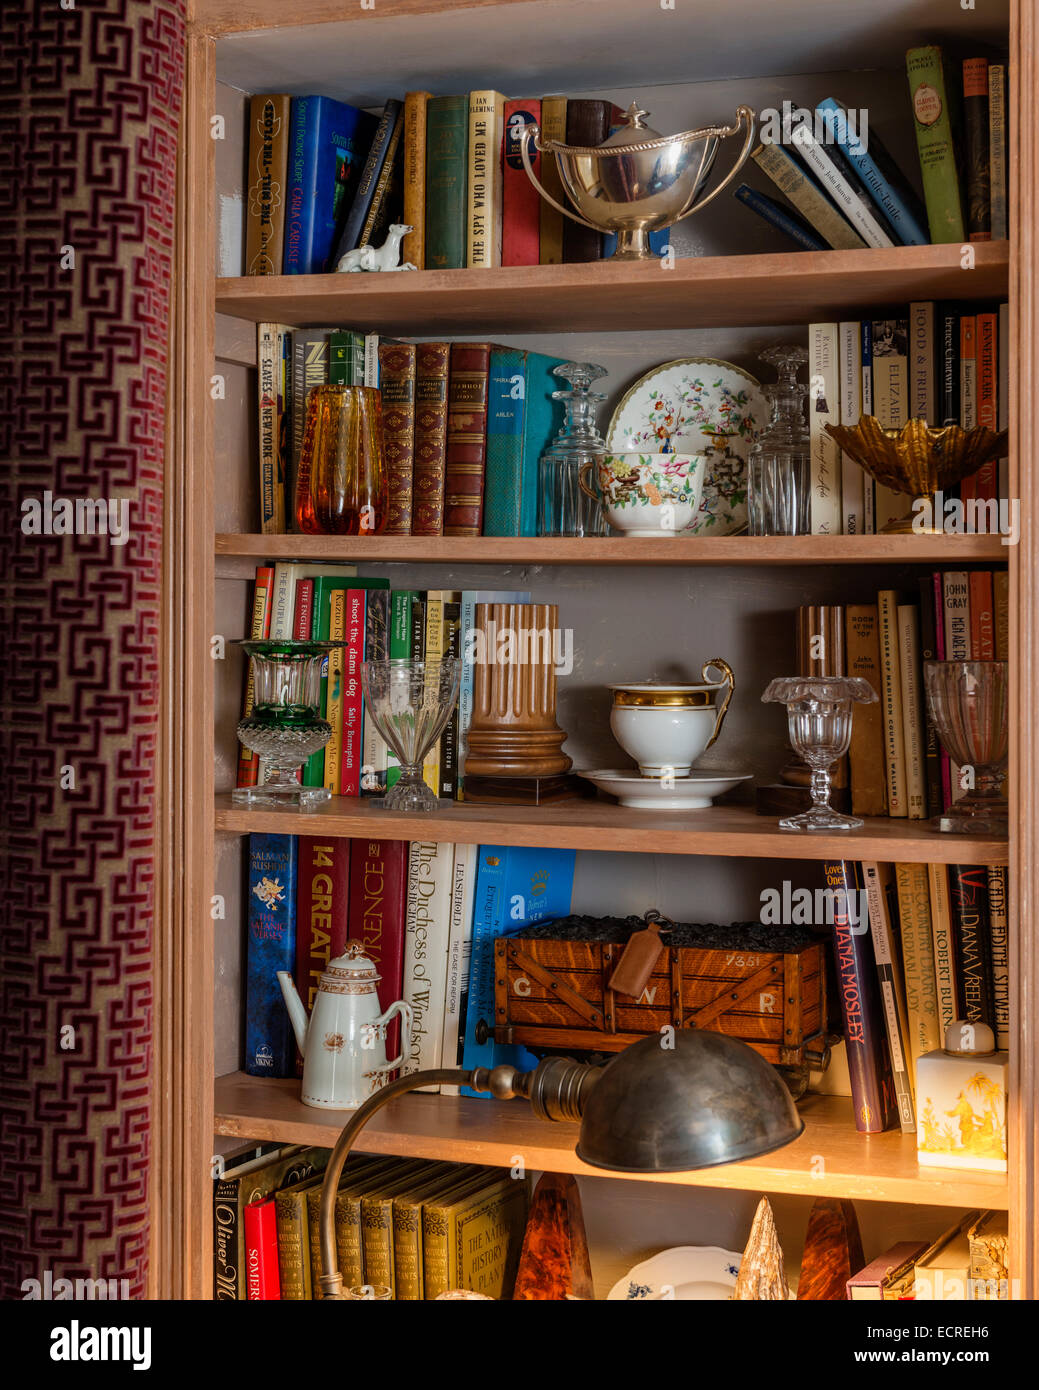 Assorted books, glassware and silverware on open wooden shelving - Stock Image